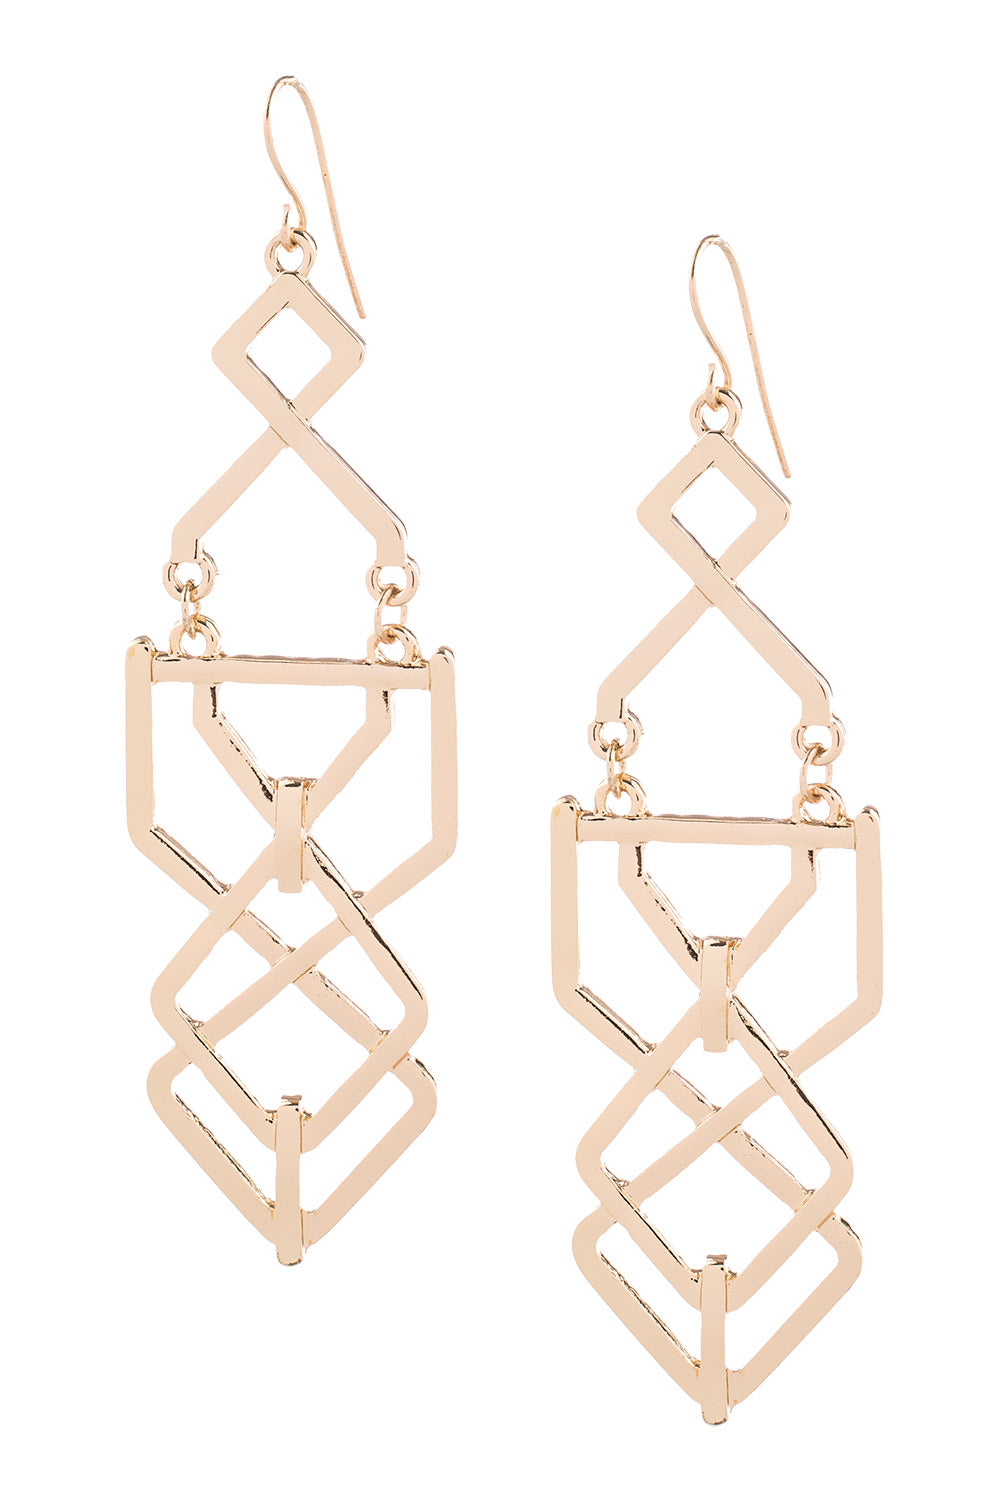 Type 3 Angles Away Earrings